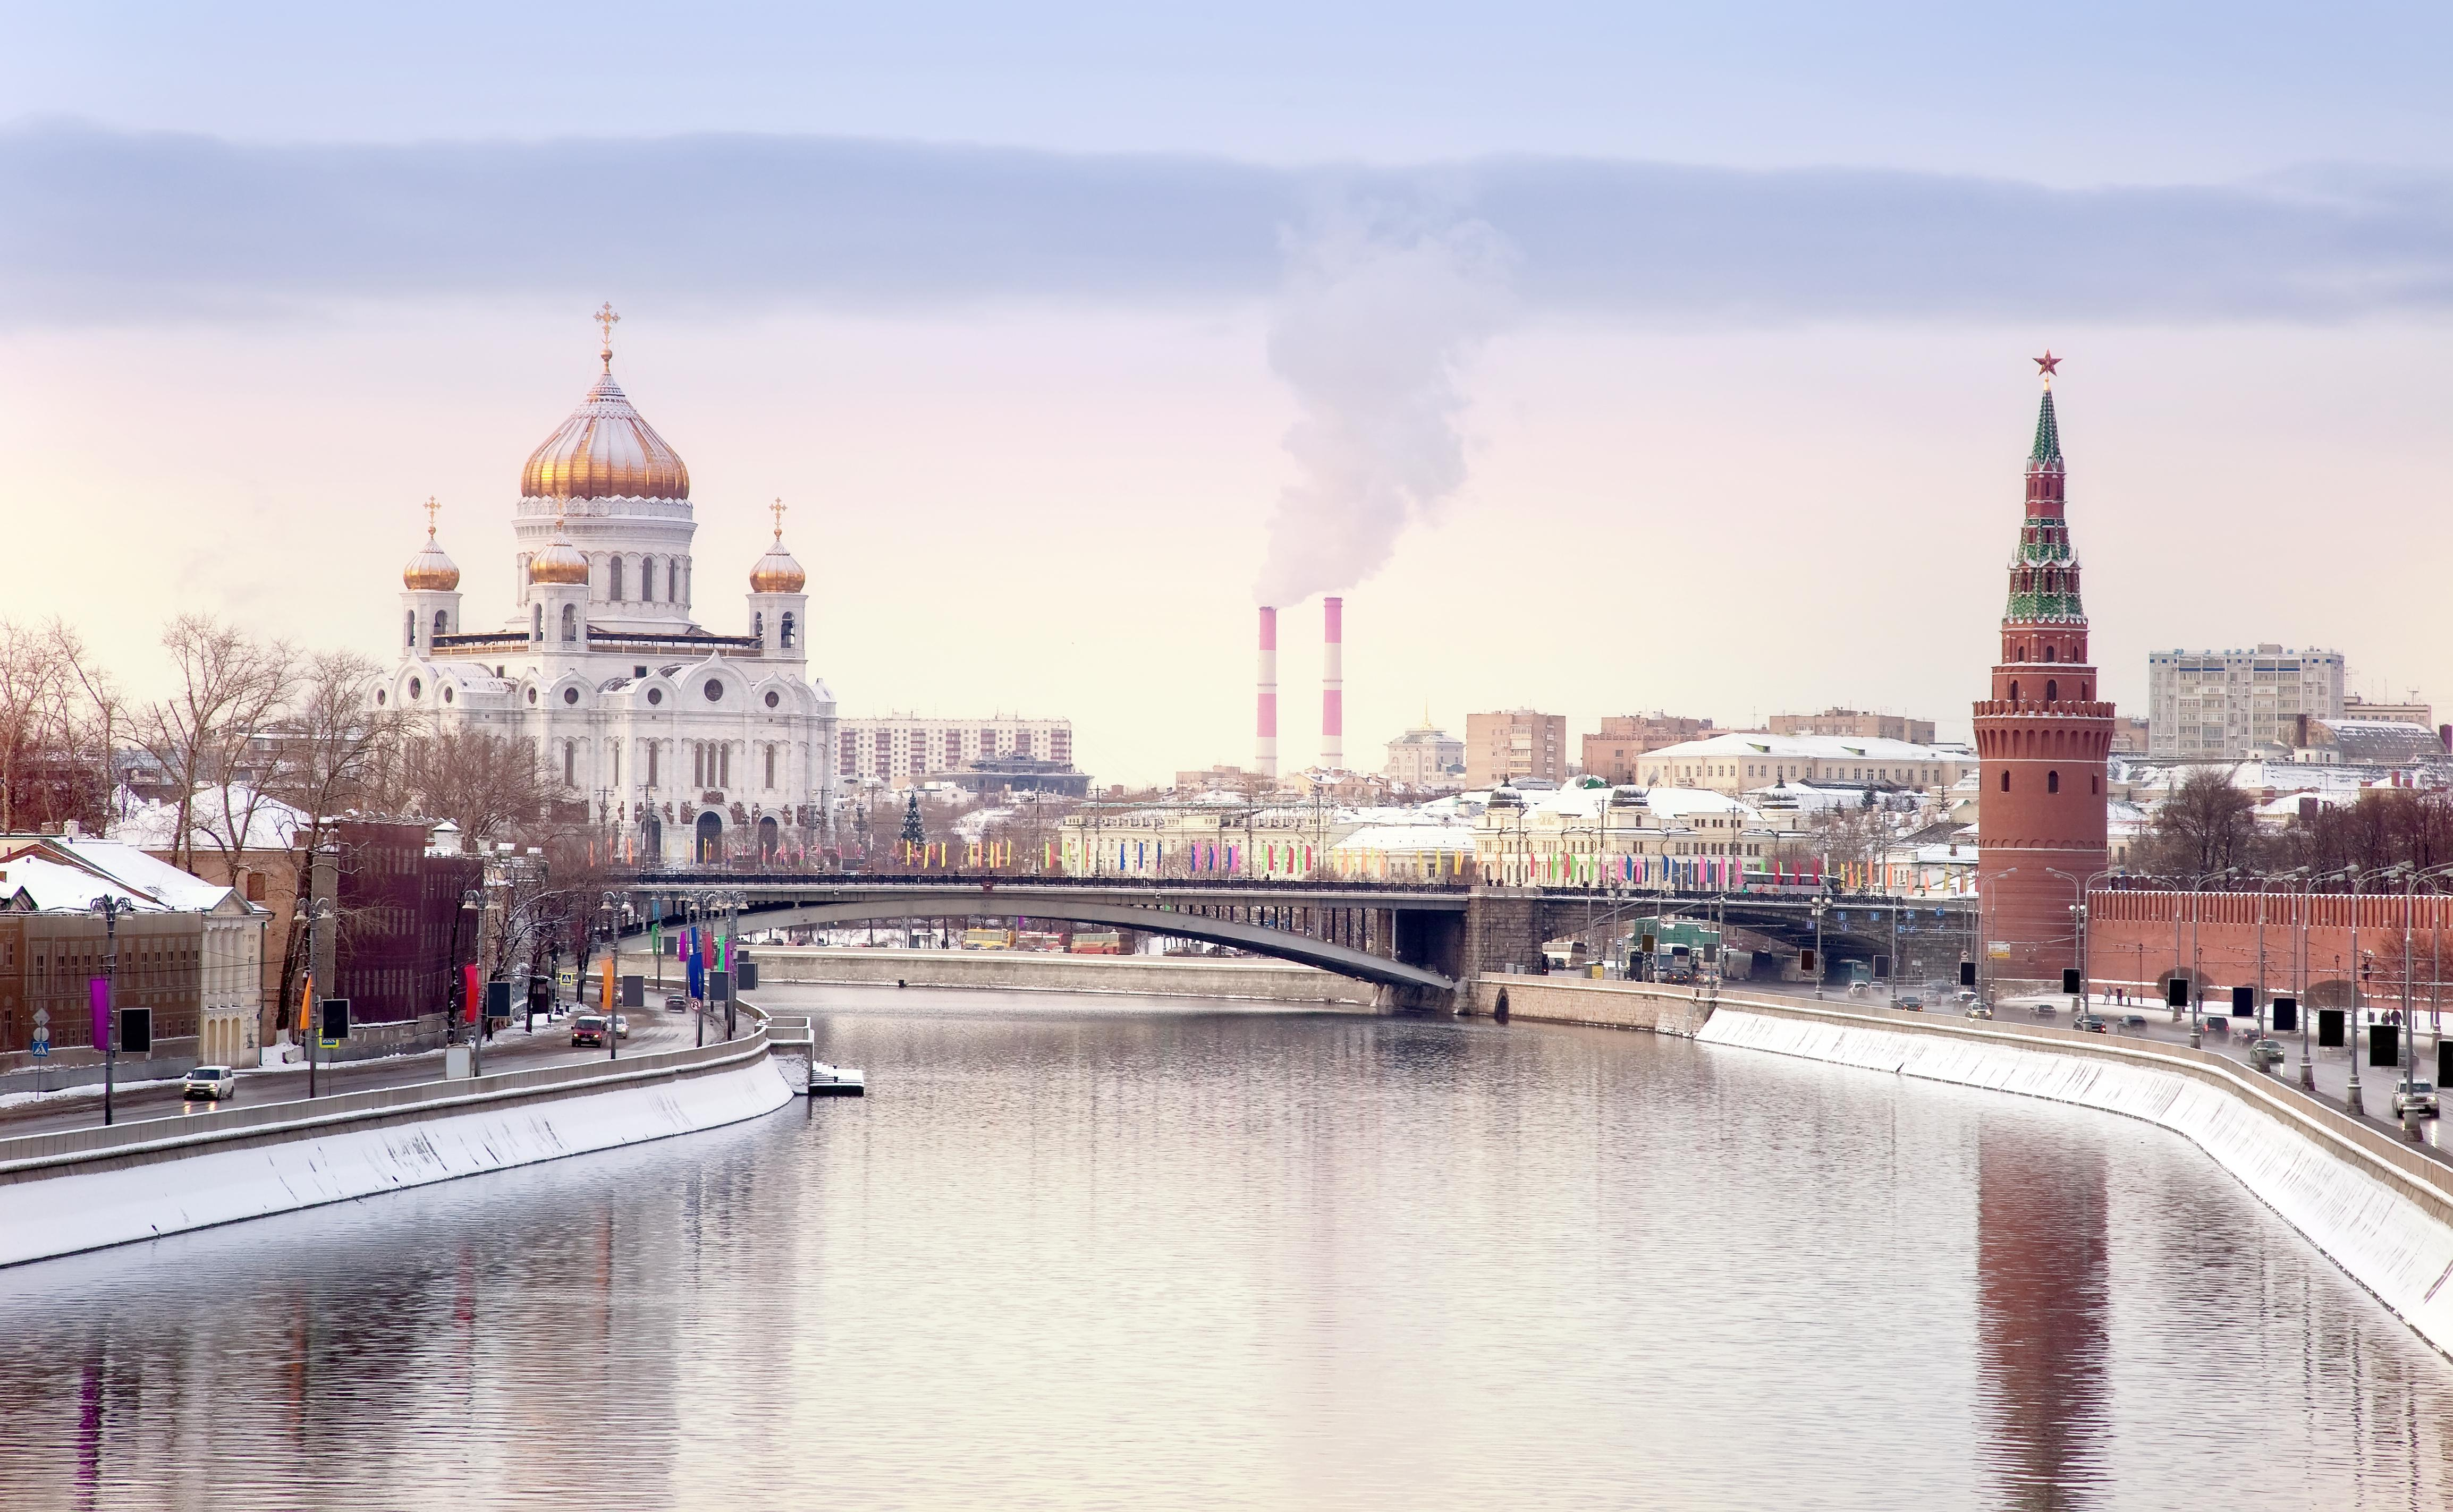 ah hotel from s 40 s 4 4 moscow hotels kayak rh kayak sg